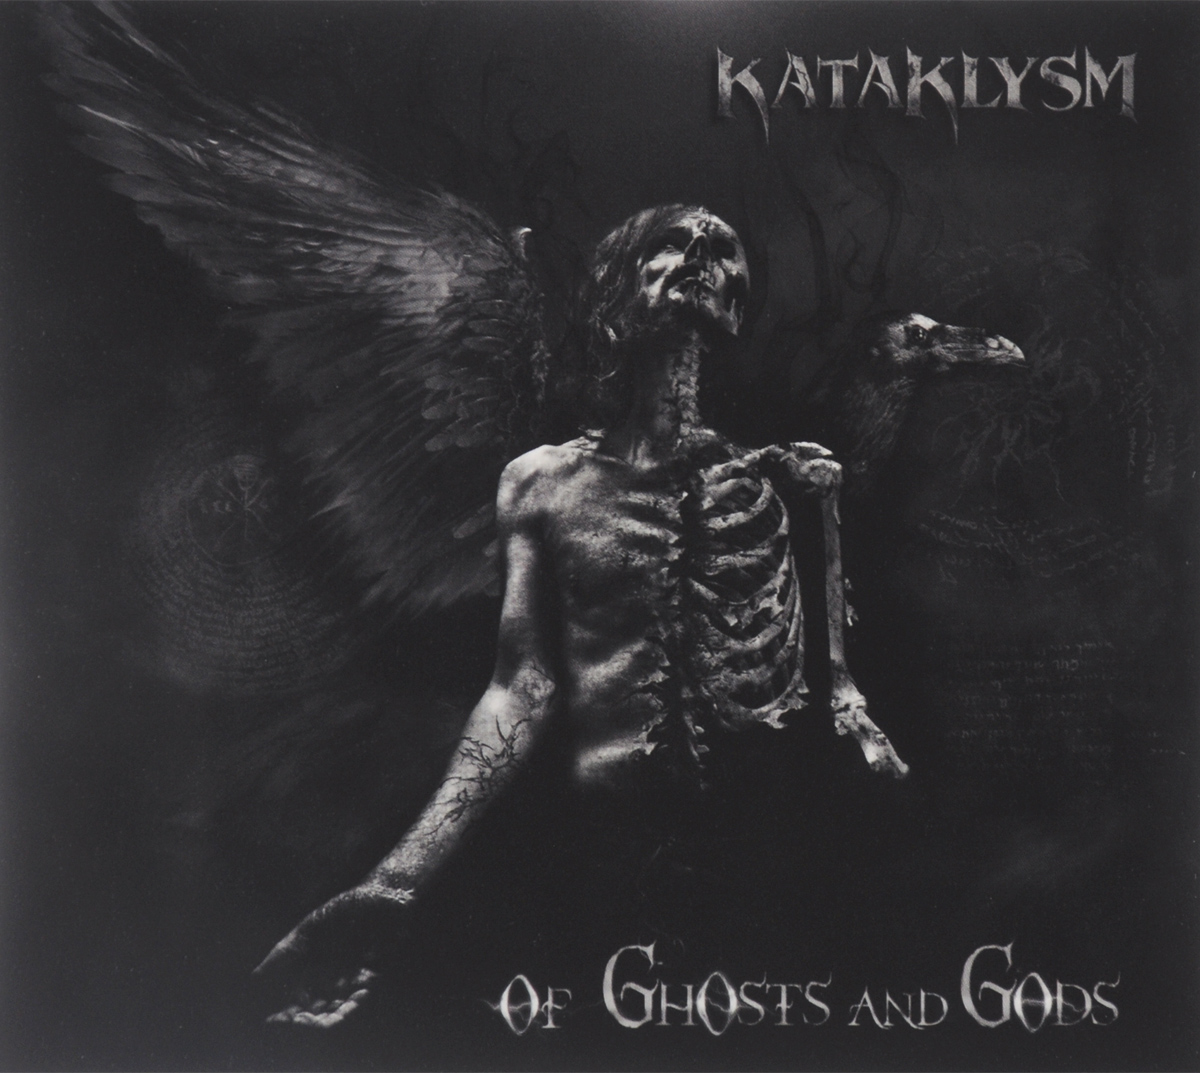 Kataklysm Kataklysm. Of Ghosts And Gods magnit rmf 2766